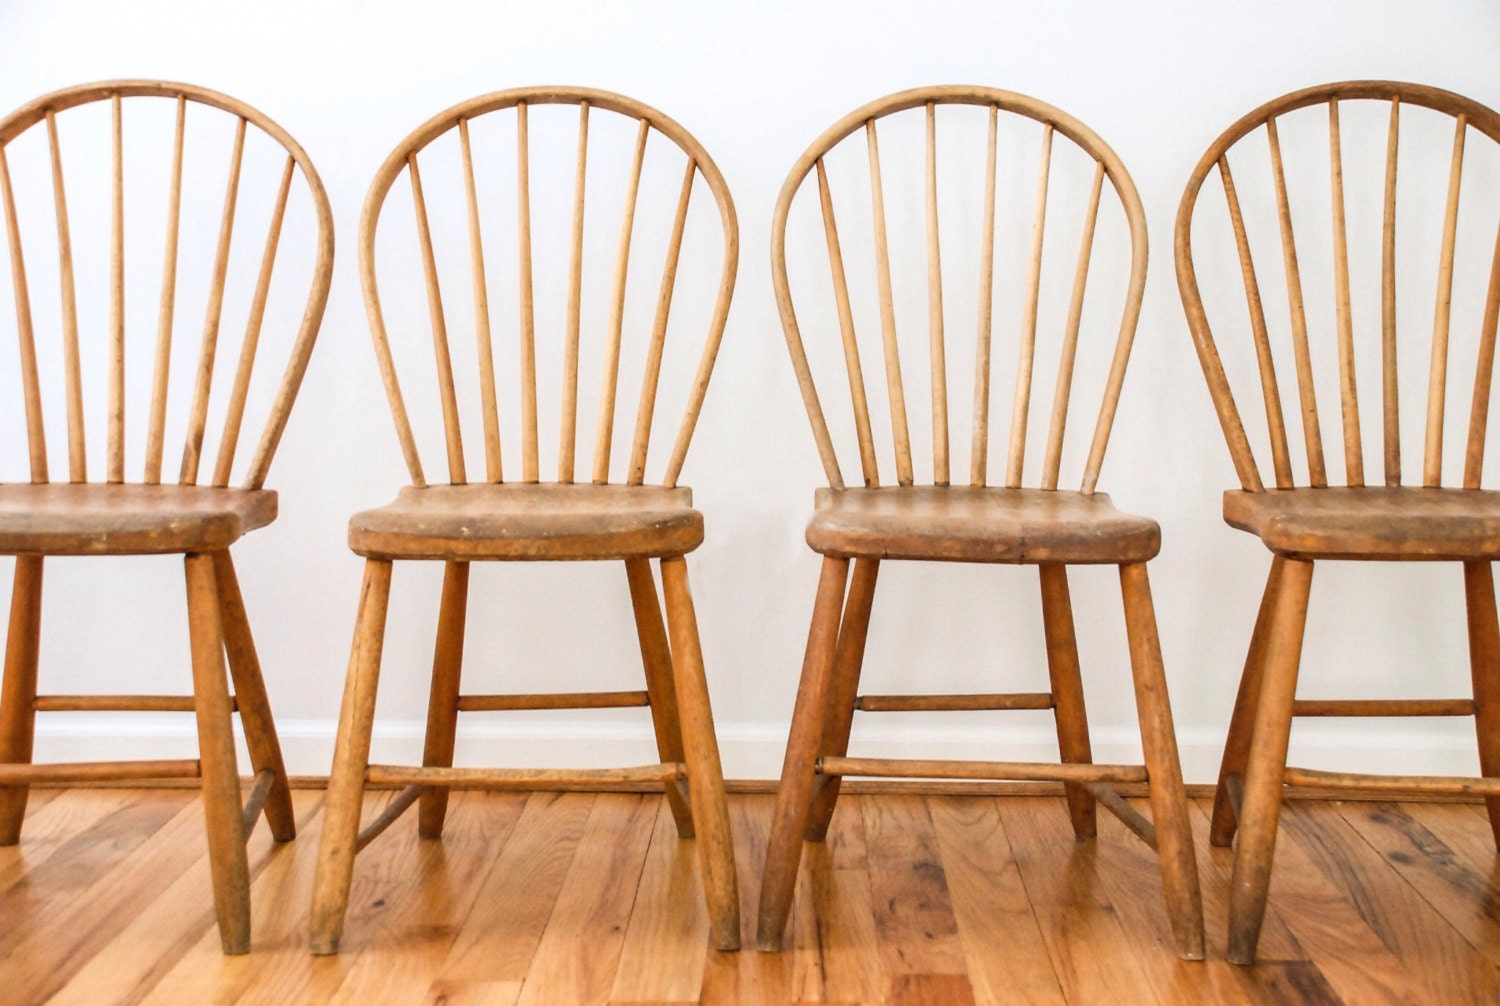 antique chairs dining chairs antique wood chairs wood